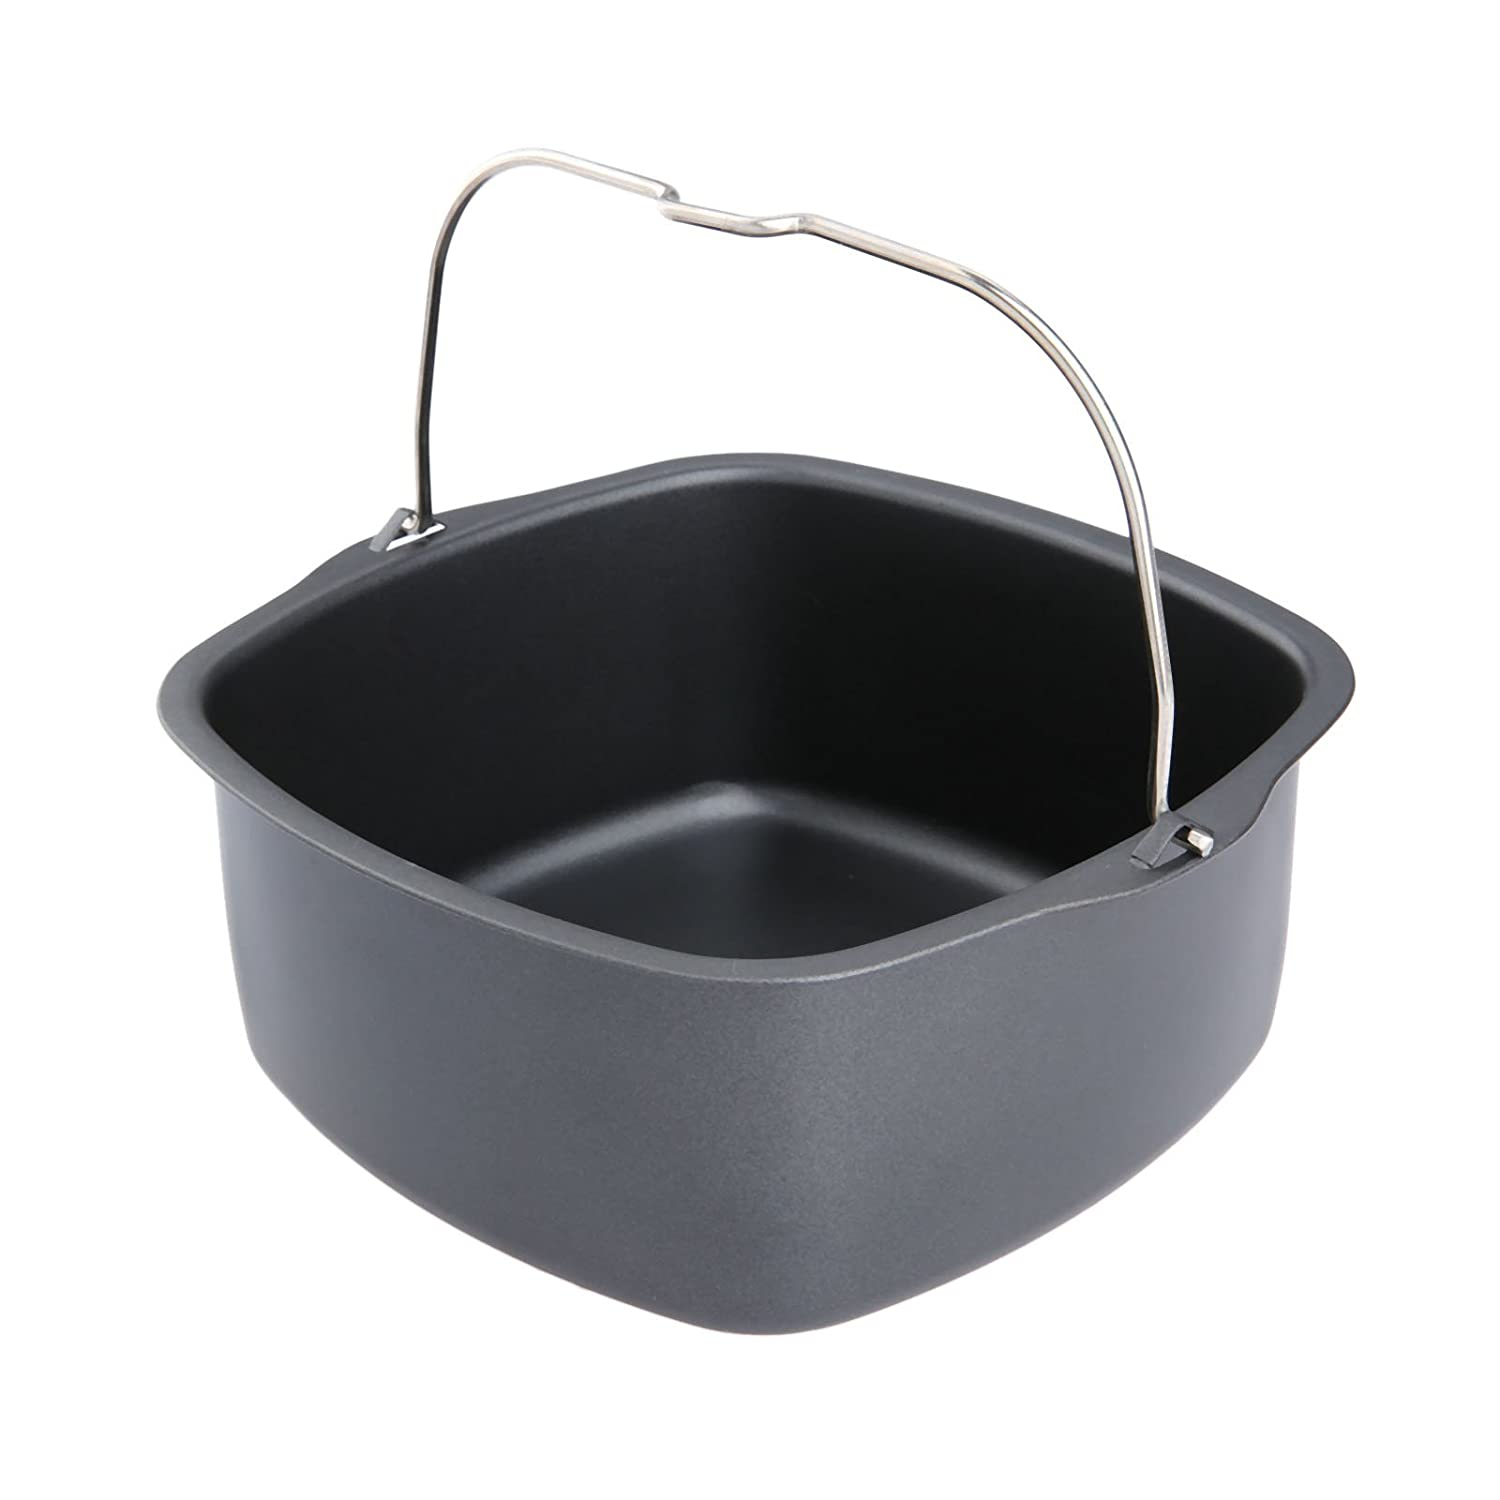 Cake Barrel, Baking Dish HD9925/00 Nonstick for Air Fryer HD9220 and HD9230, Air Fryer Accessories